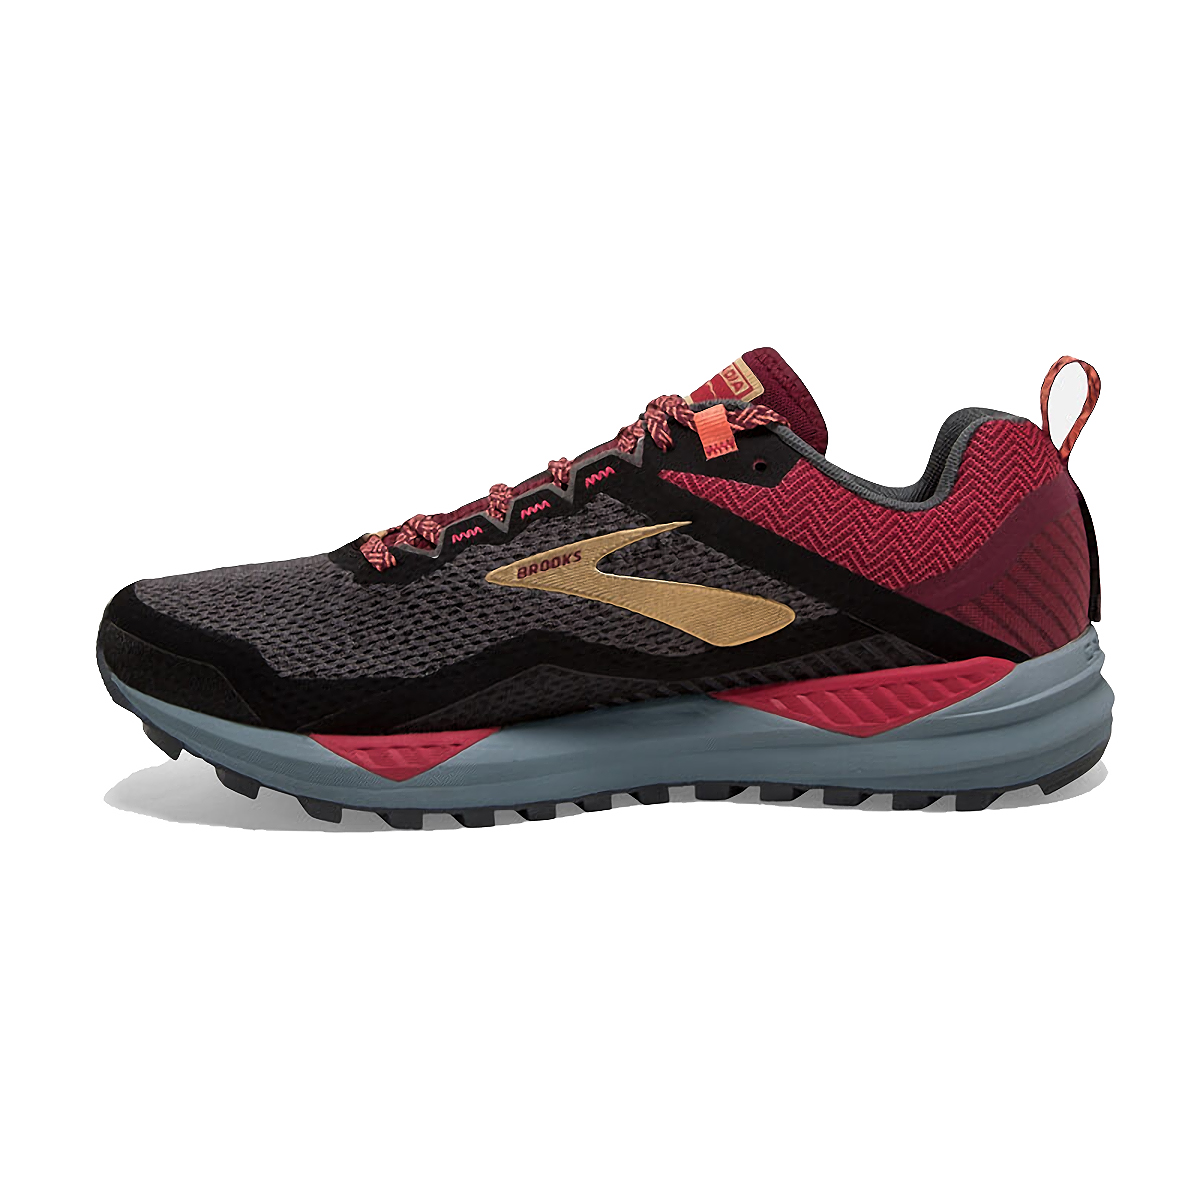 Women's Brooks Cascadia 14 Trail Running Shoe - Color: Black/Rumba Red - Size: 5 - Width: Regular, Black/Rumba Red, large, image 2